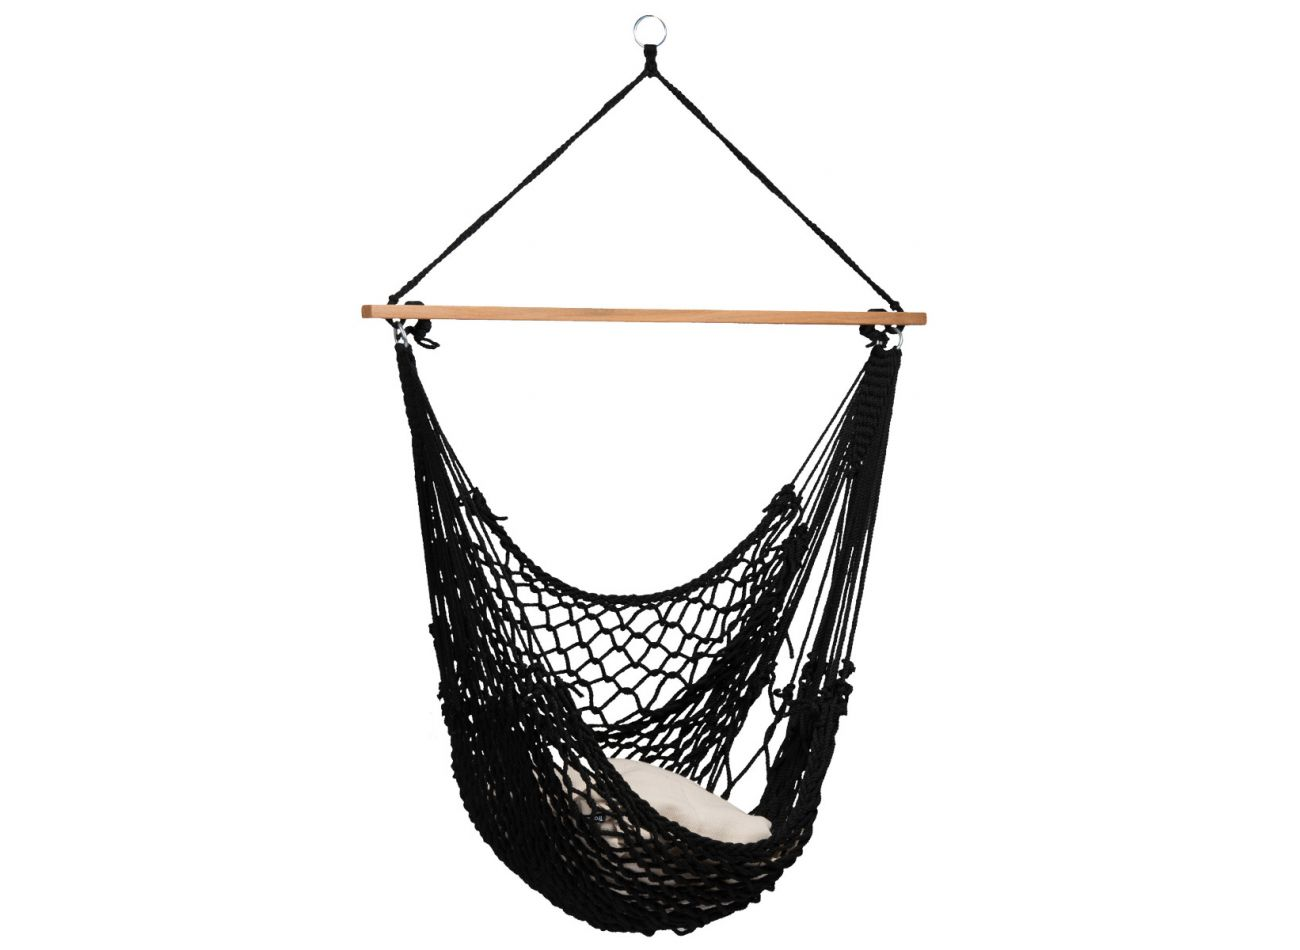 Buy Hanging Chair 1 Person Rope Black At The Hammock